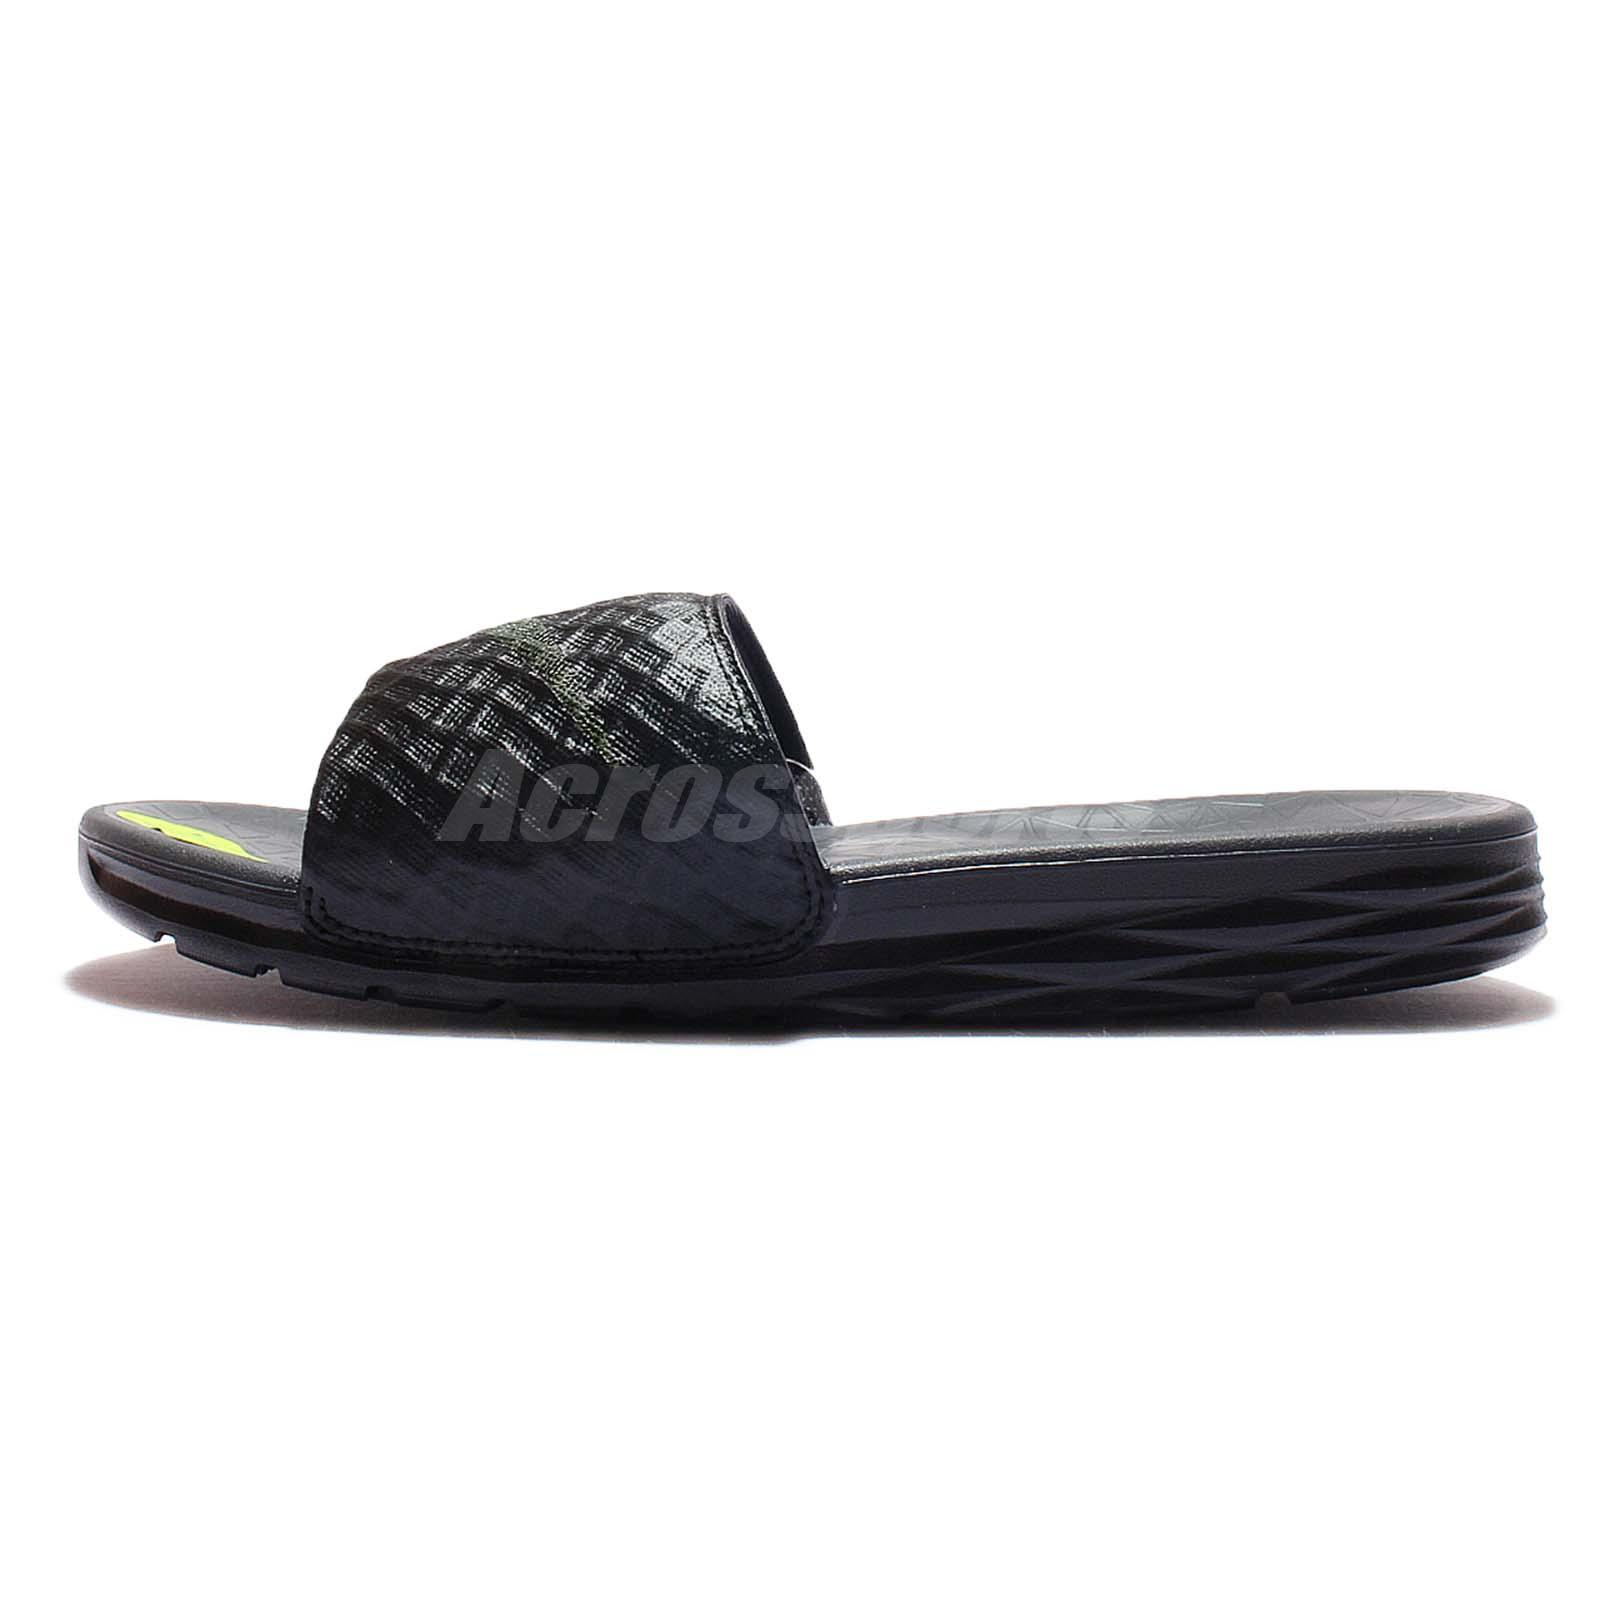 08a05a8d1750 Nike Benassi Solarsoft 2 Black Grey Mens Sandal Slides Slippers 705474-091